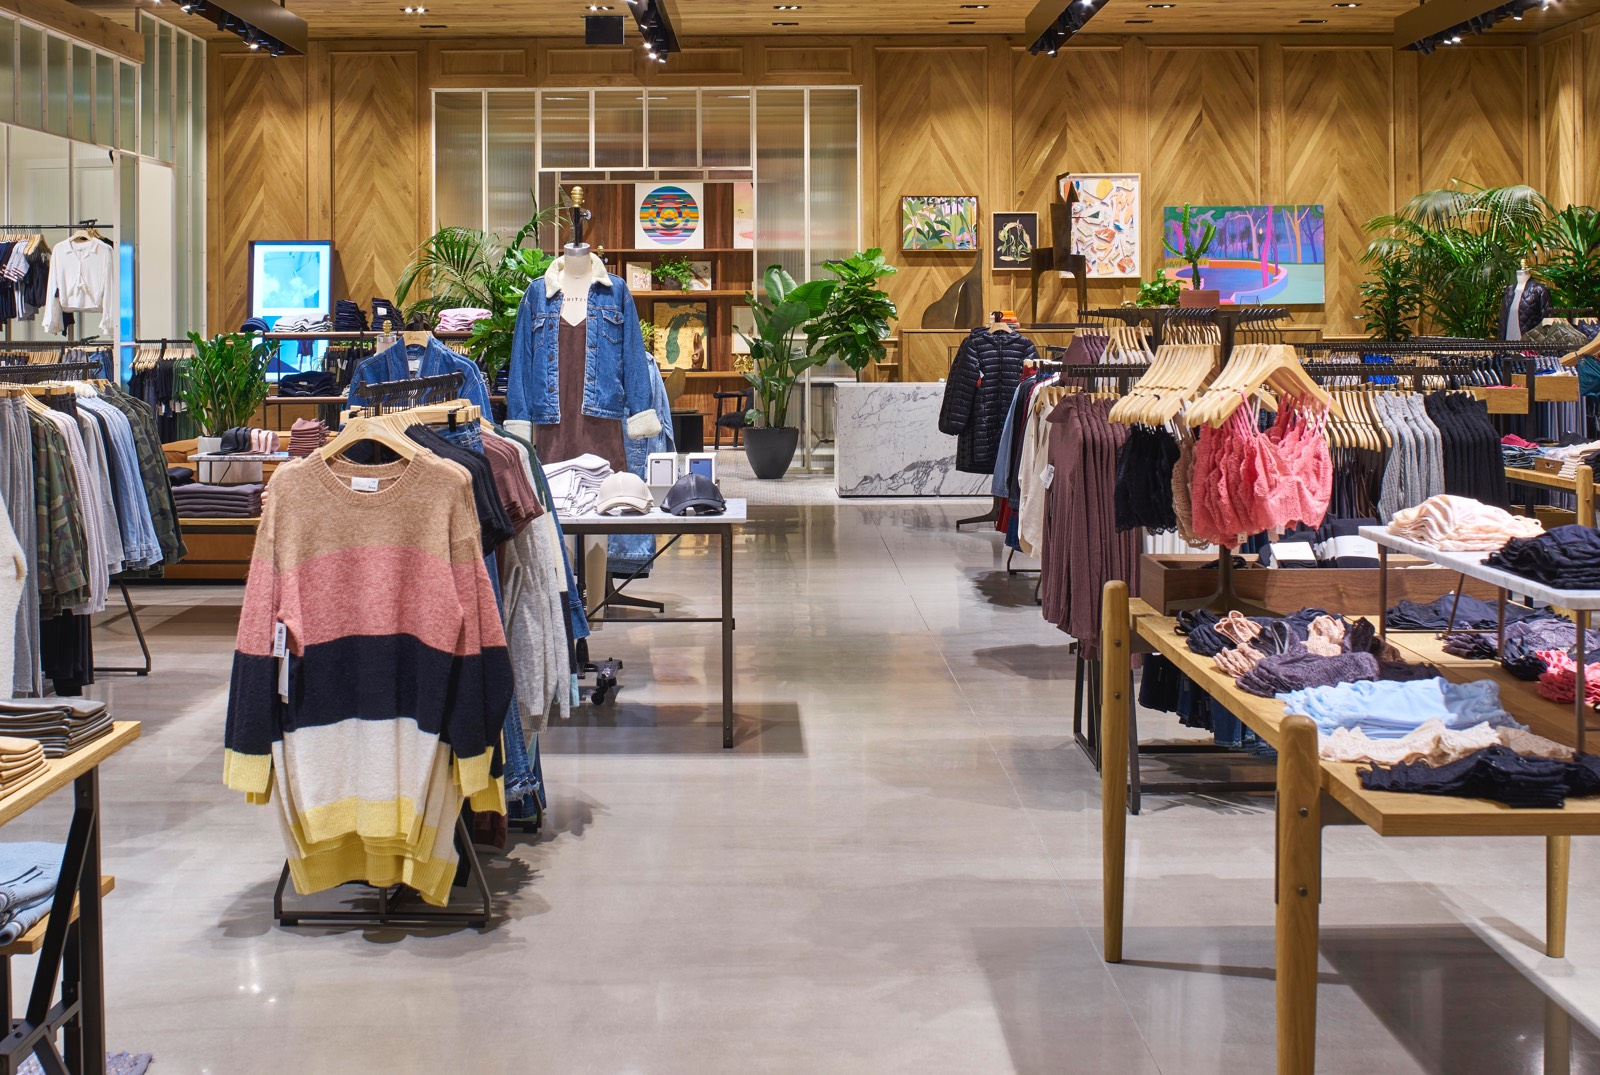 New Balance magasin de chaussures South Coast Plaza